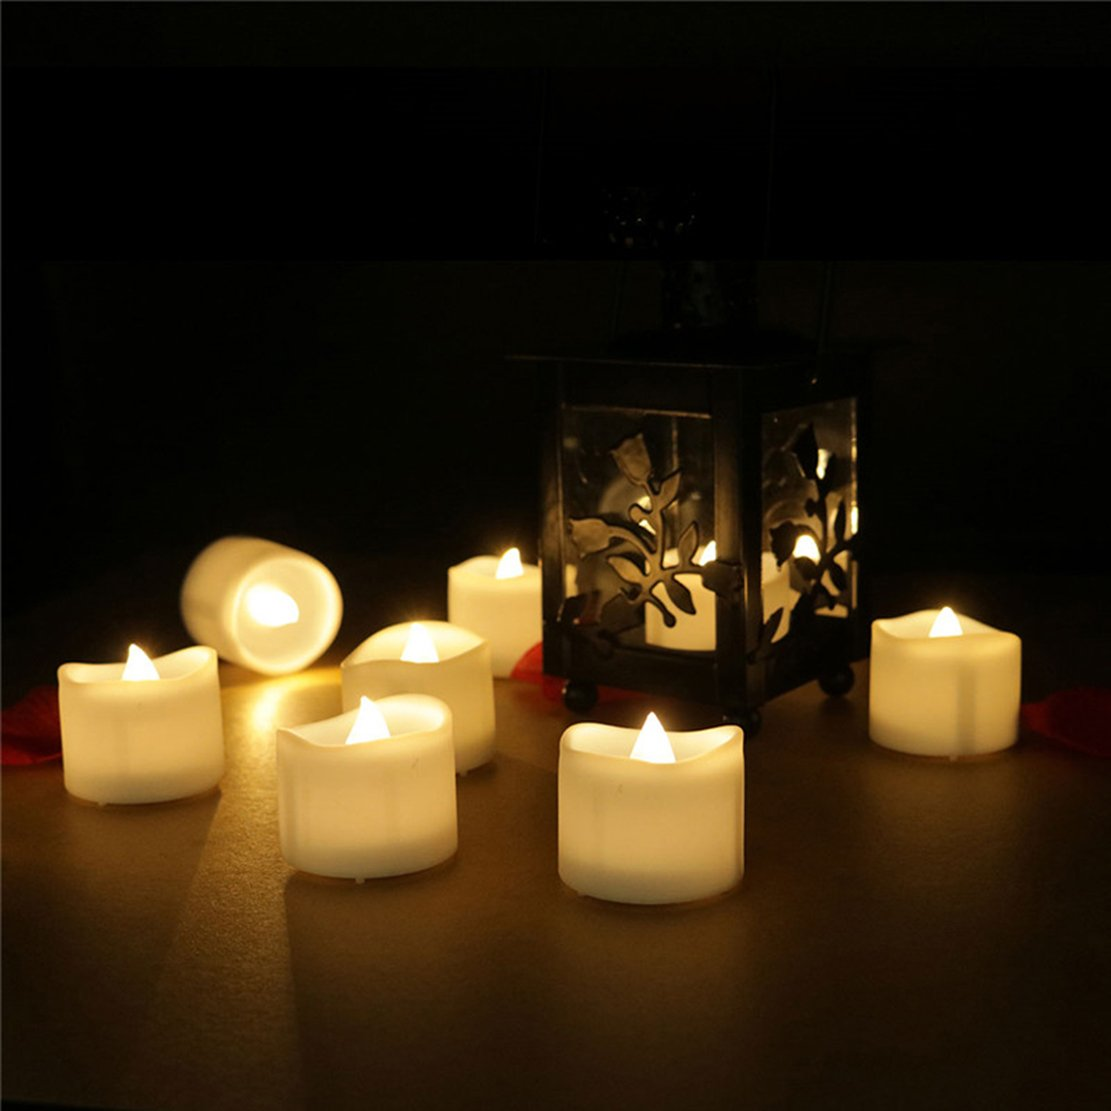 200 Hours Led Mini Tea Light with Timer (6 Hrs On 18 Hrs Off) Flameless Warm White Flickering Fake Votive Candle Wavy Open Rustic Long Lasting Electric Timed Tealights Party Home Wedding Decor 96 PCS by Beauty Collector (Image #7)